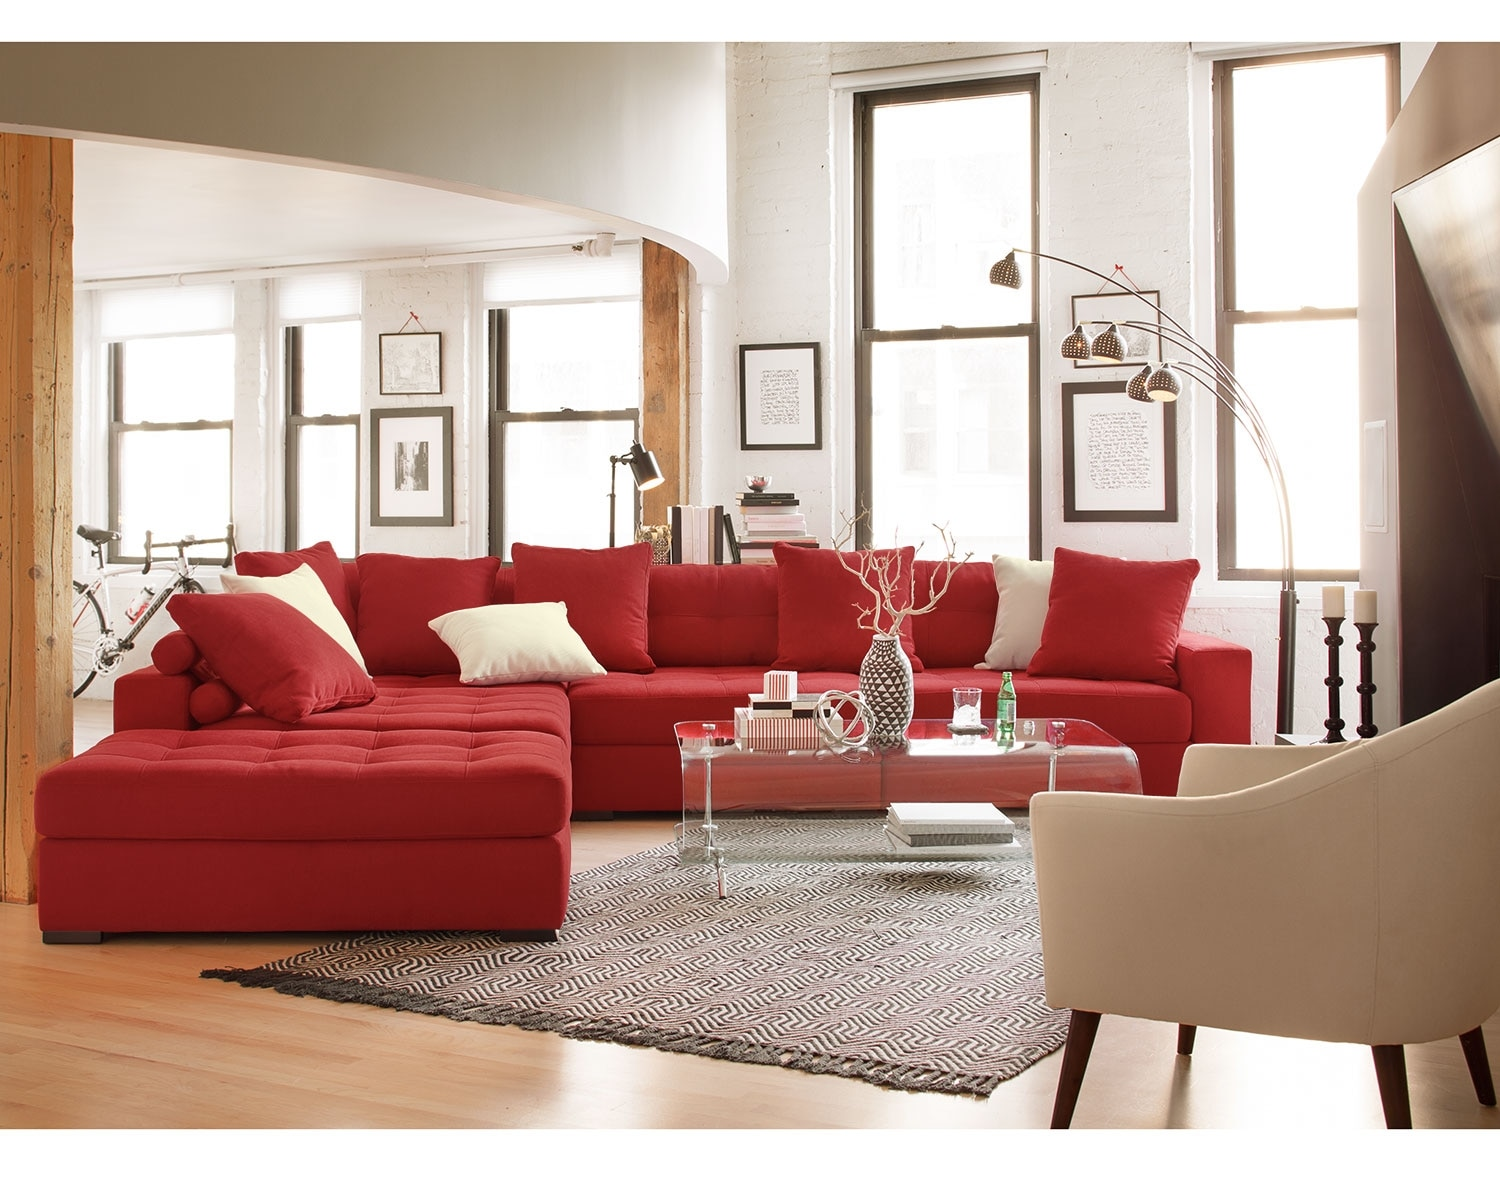 The Venti Collection Red Value City Furniture and Mattresses